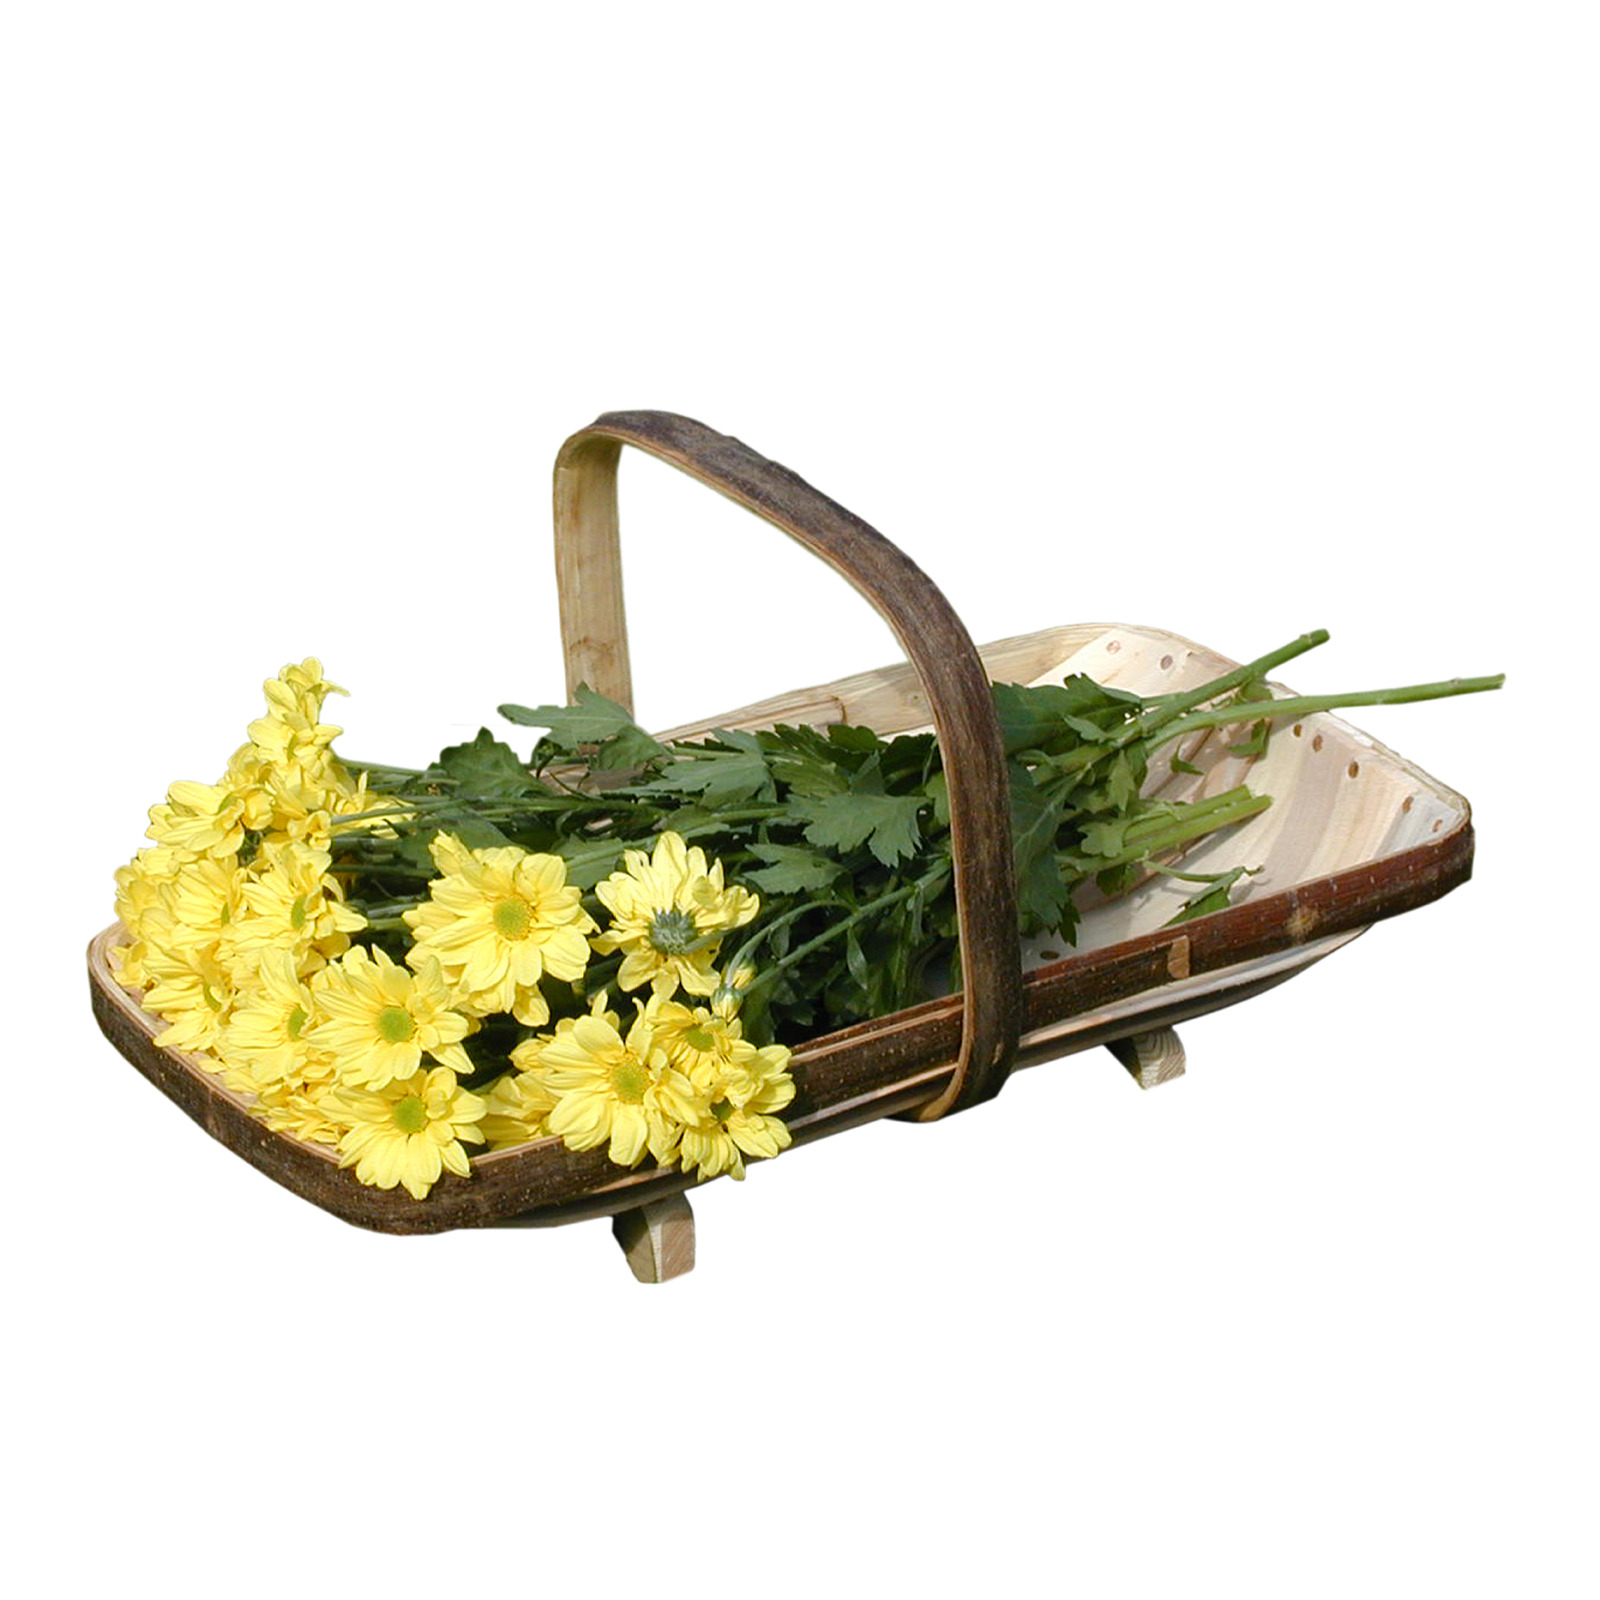 The Royal Sussex Trug - Flower Trug